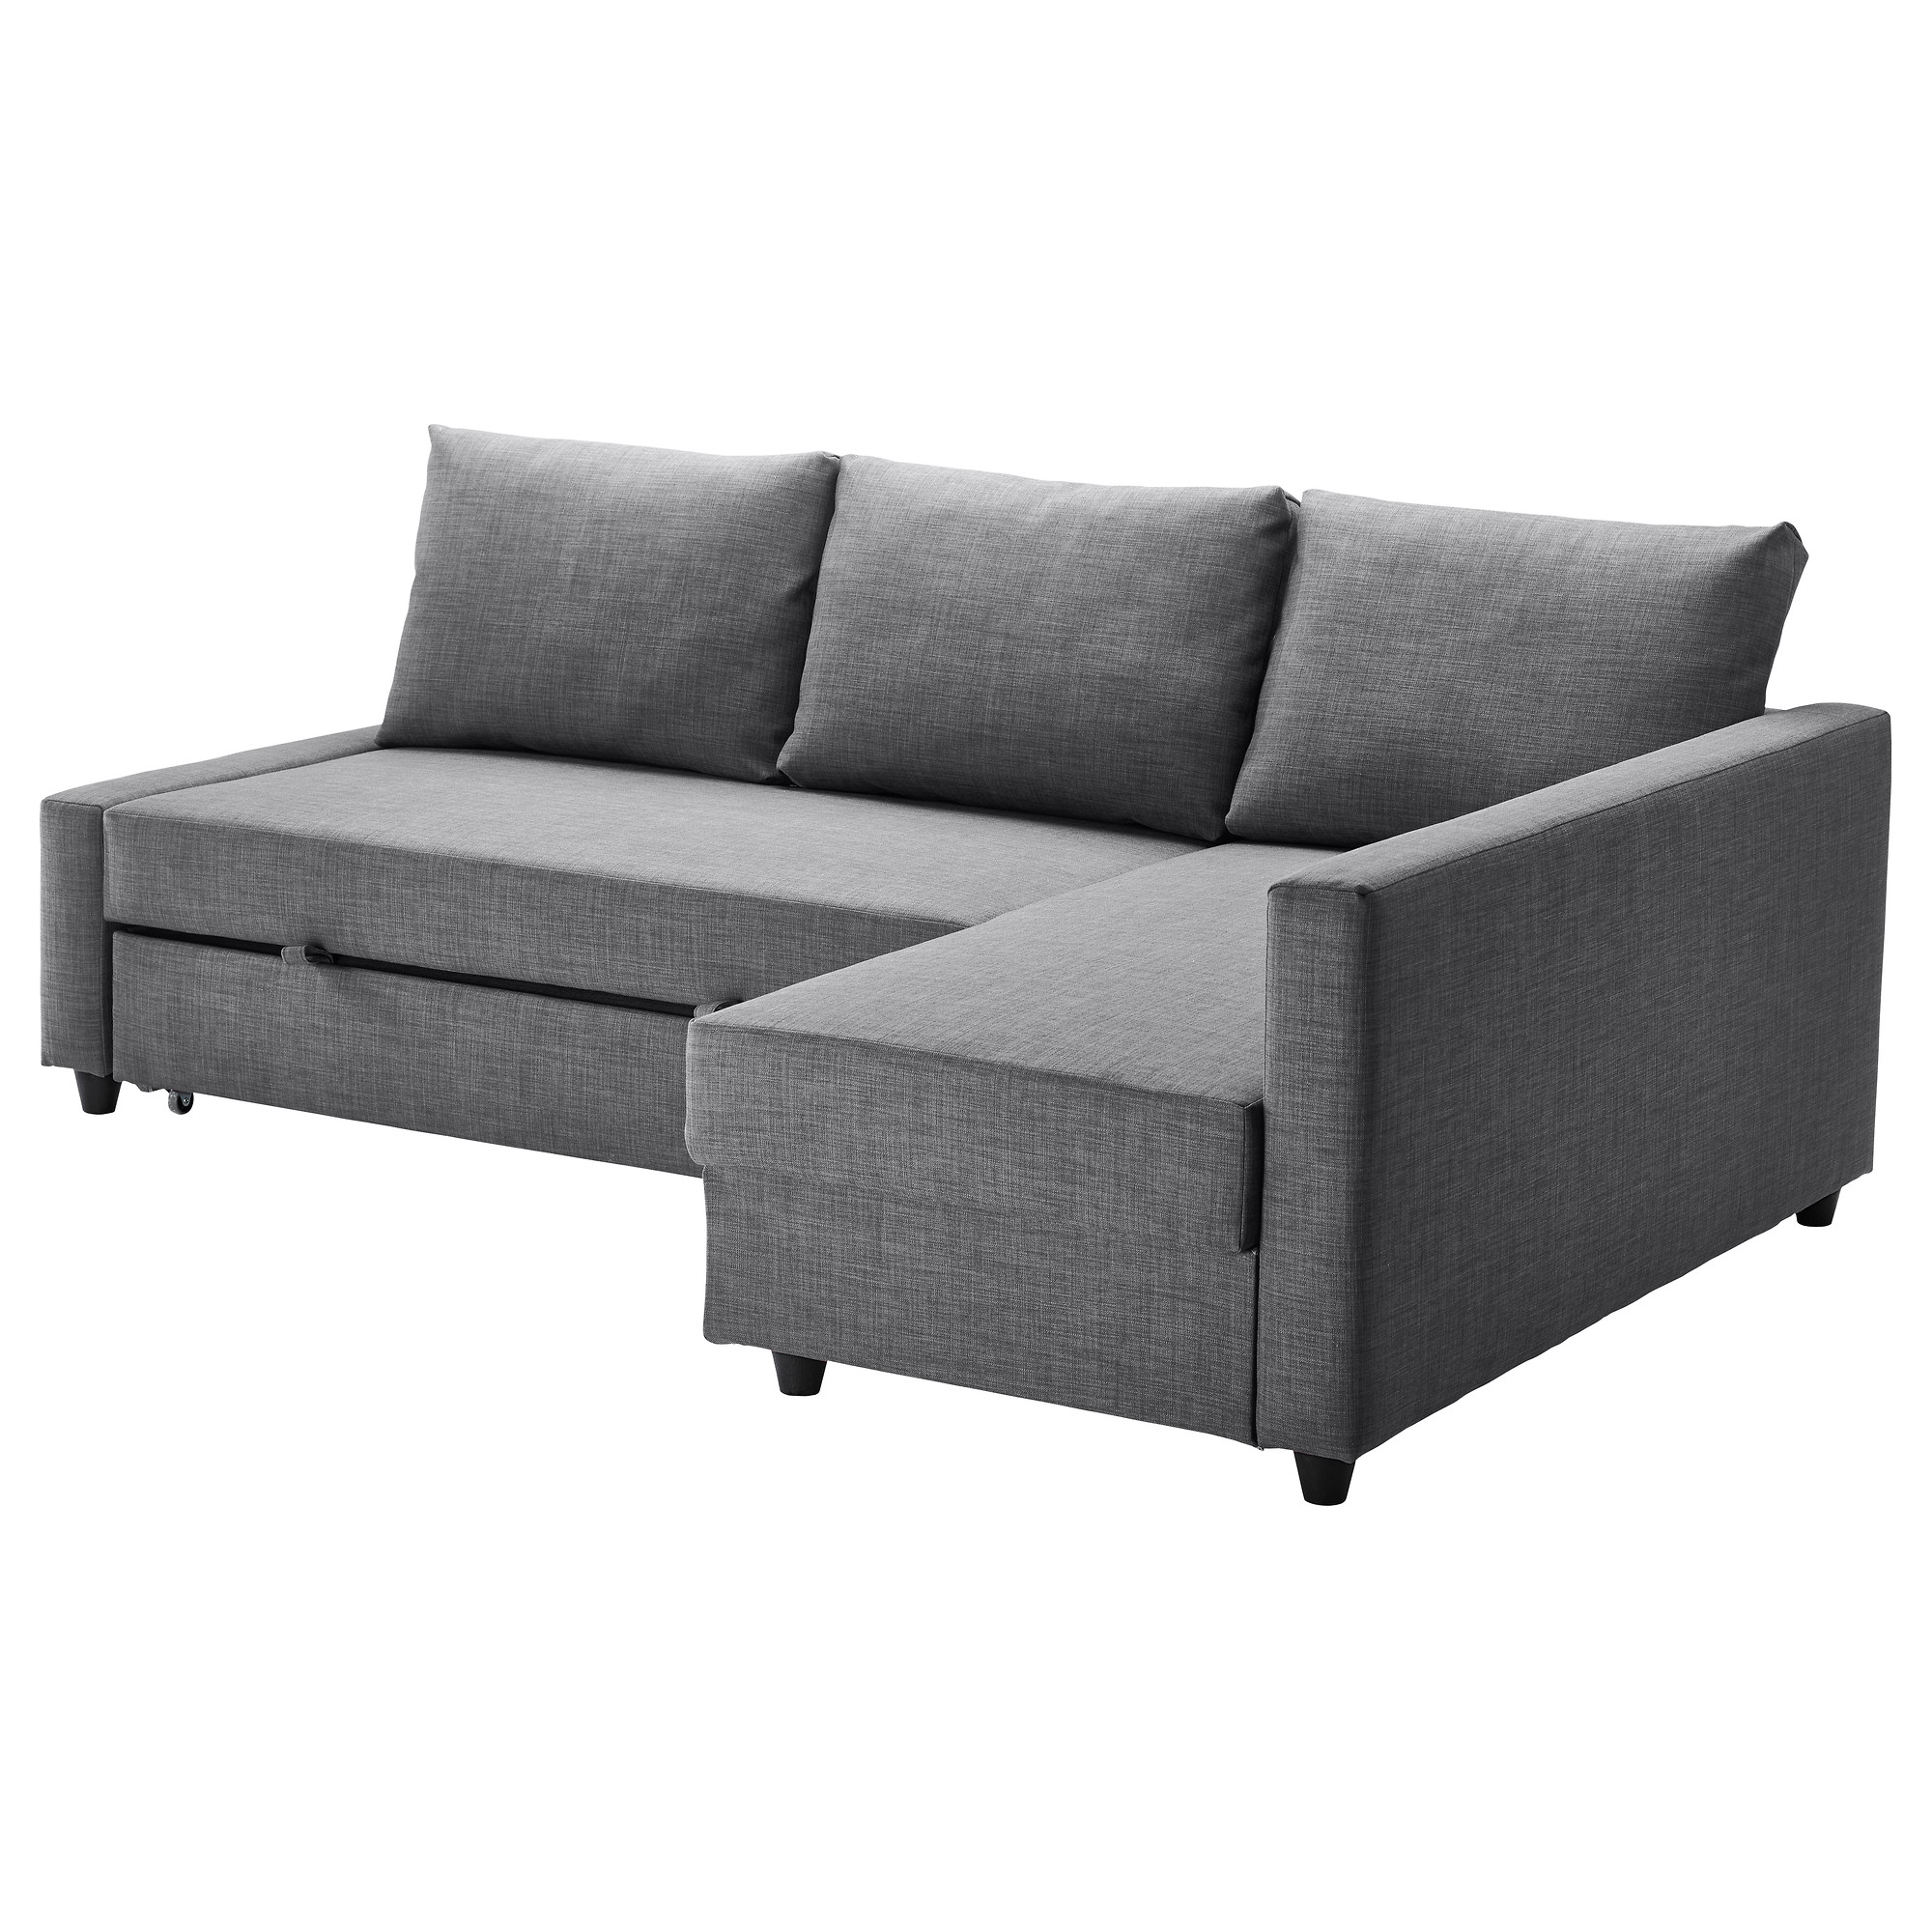 Luxury Chair Sofa Bed 61 In Contemporary Sofa Inspiration with Chair Sofa Bed